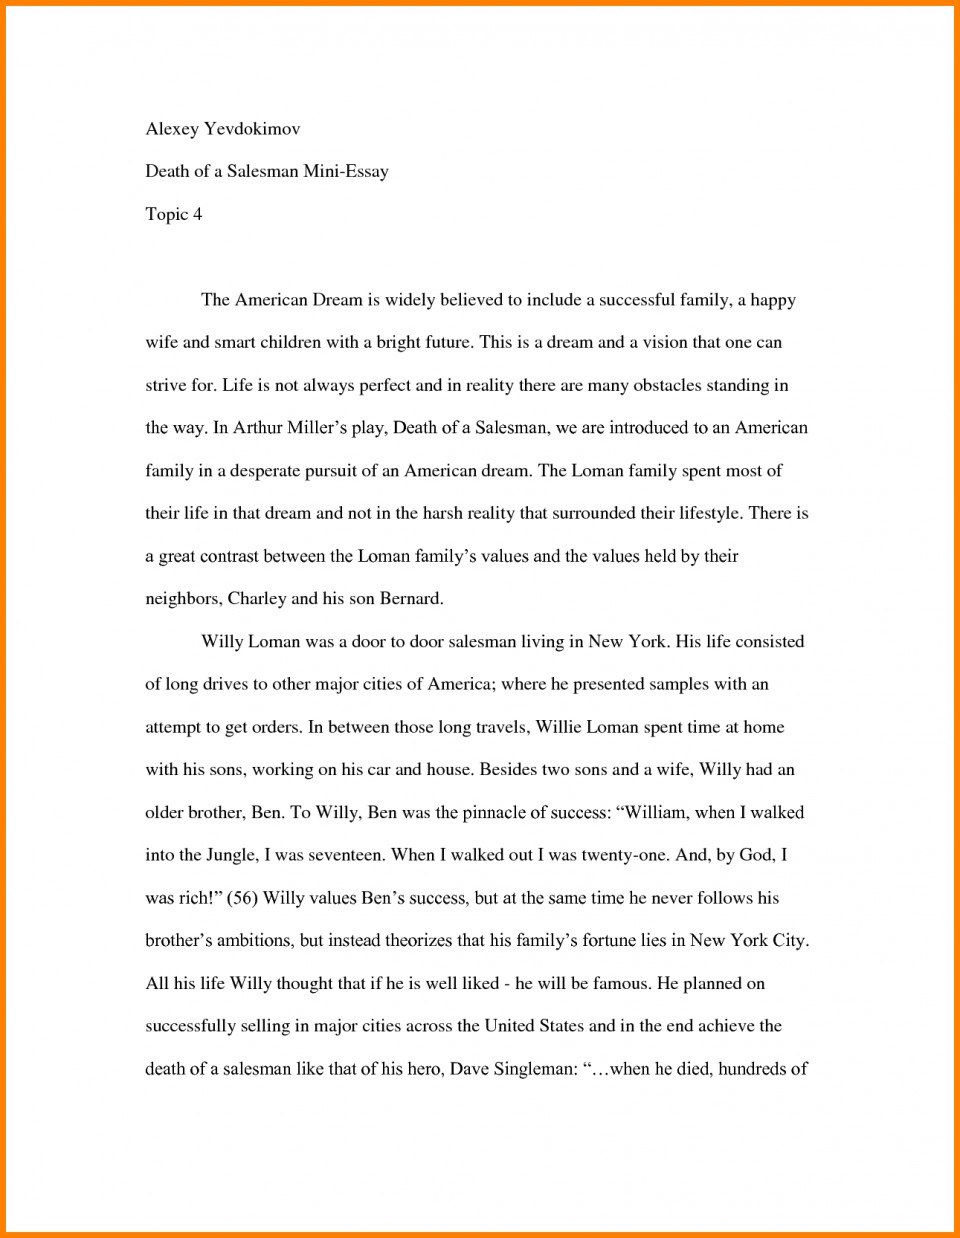 004 Essay Example How To Start Off An About Yourself Amazing Analysis On A Book Ways With Question Two Books 960